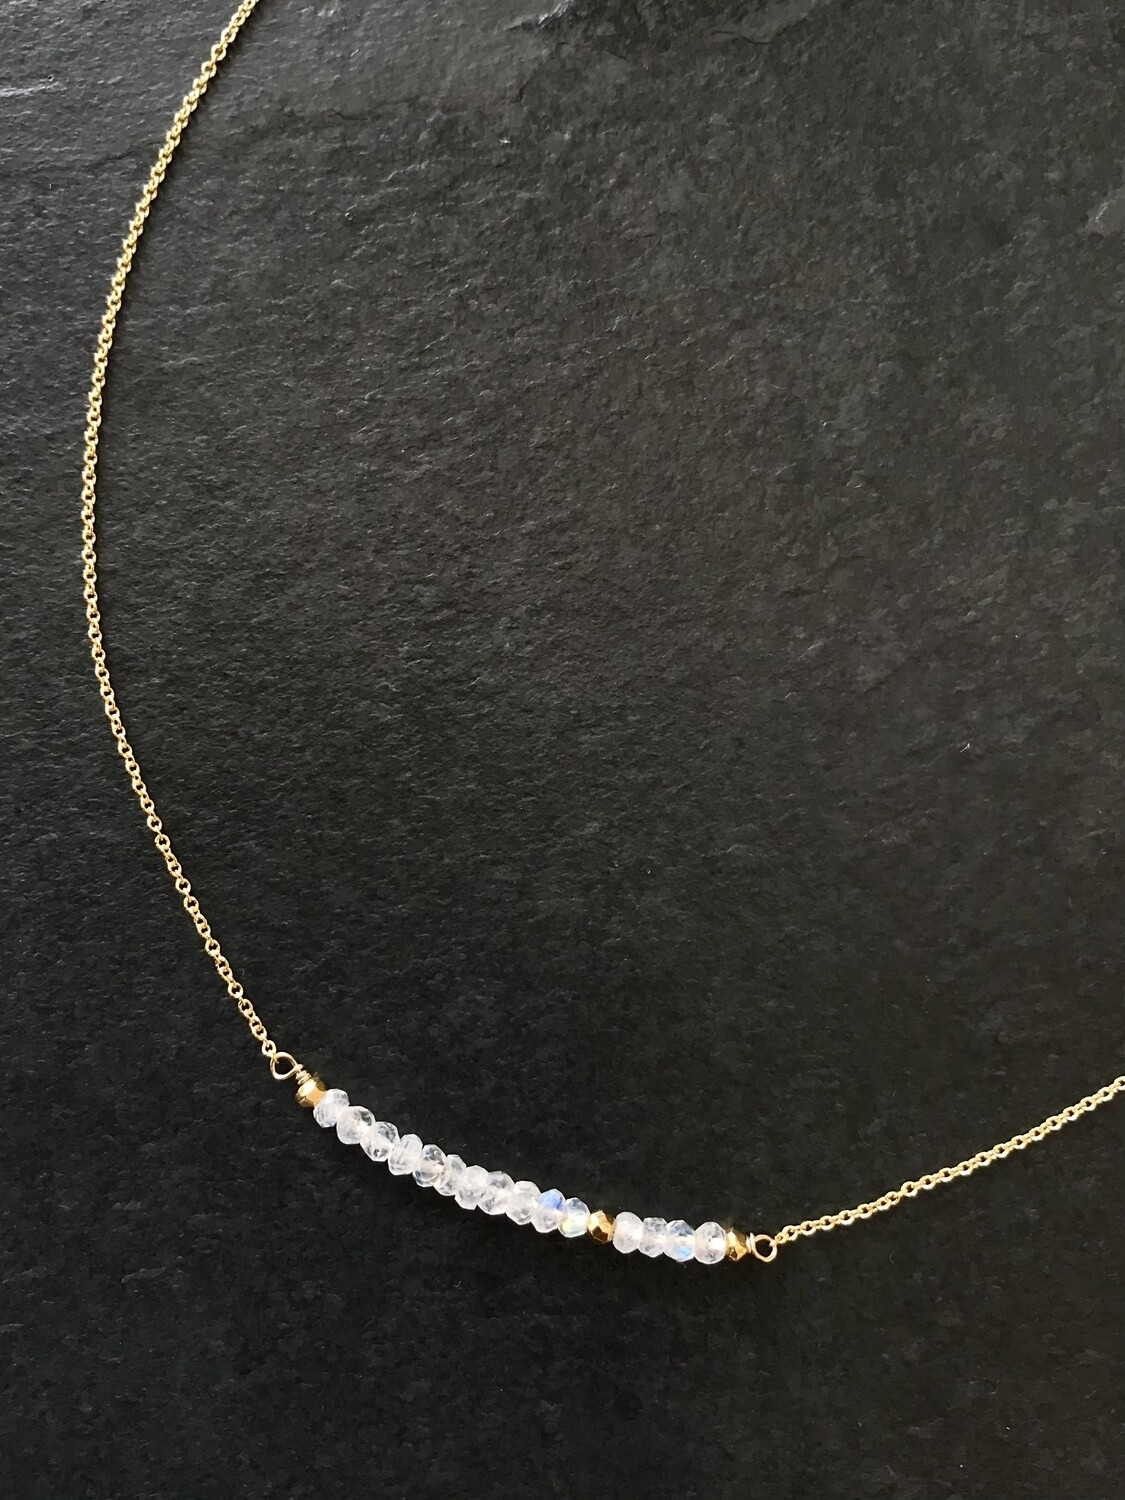 Moonstone & Pyrite Iris Necklace - GDFDSN6